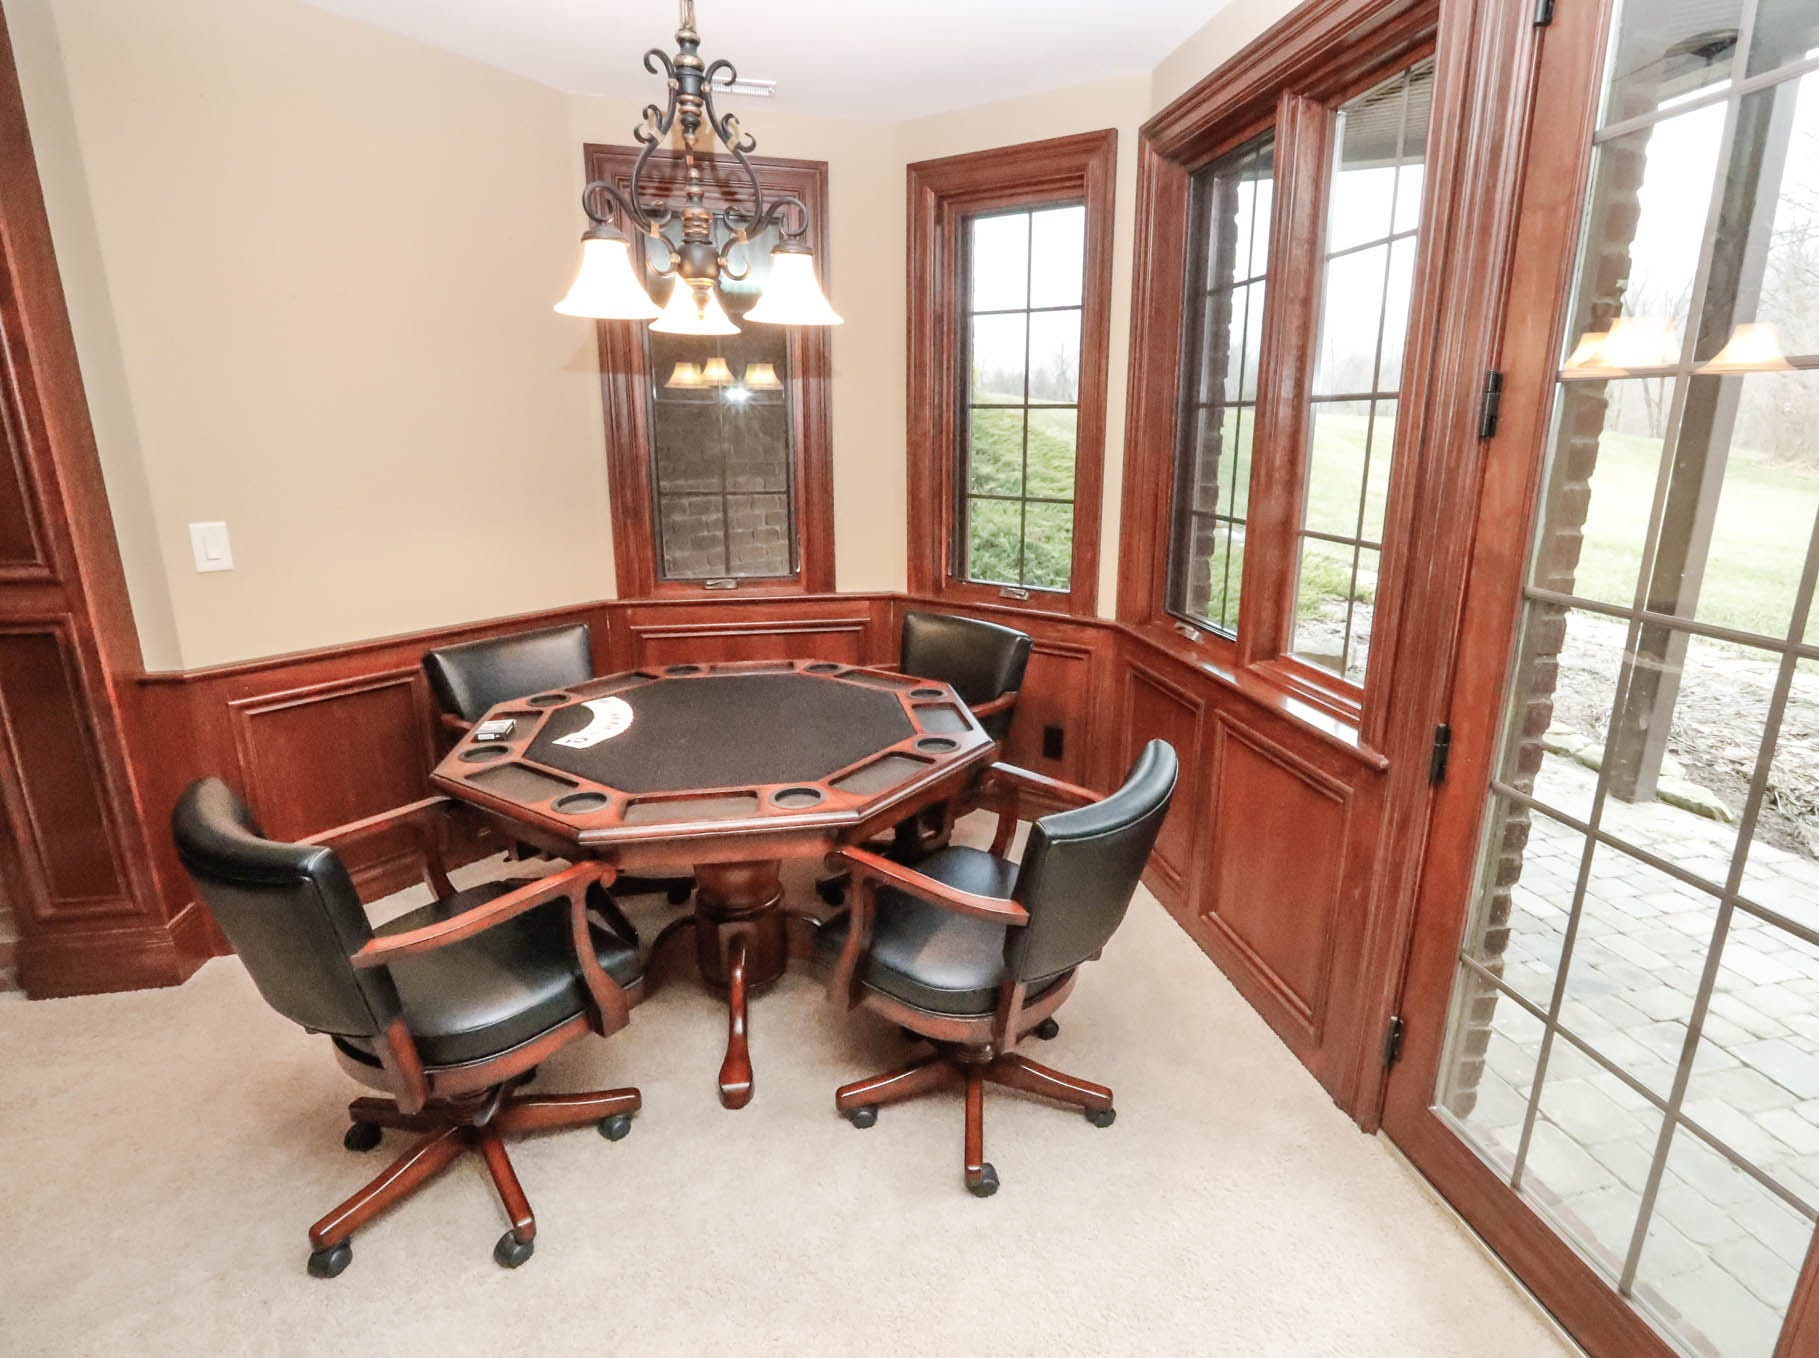 The basement of a traditional $2m home up for sale in Bargersville Ind., features a game table, shuffleboard table, aquarium, bar, fireplace and home theatre room on Wednesday, Jan. 9, 2019. The home sits on 8.1 acres.